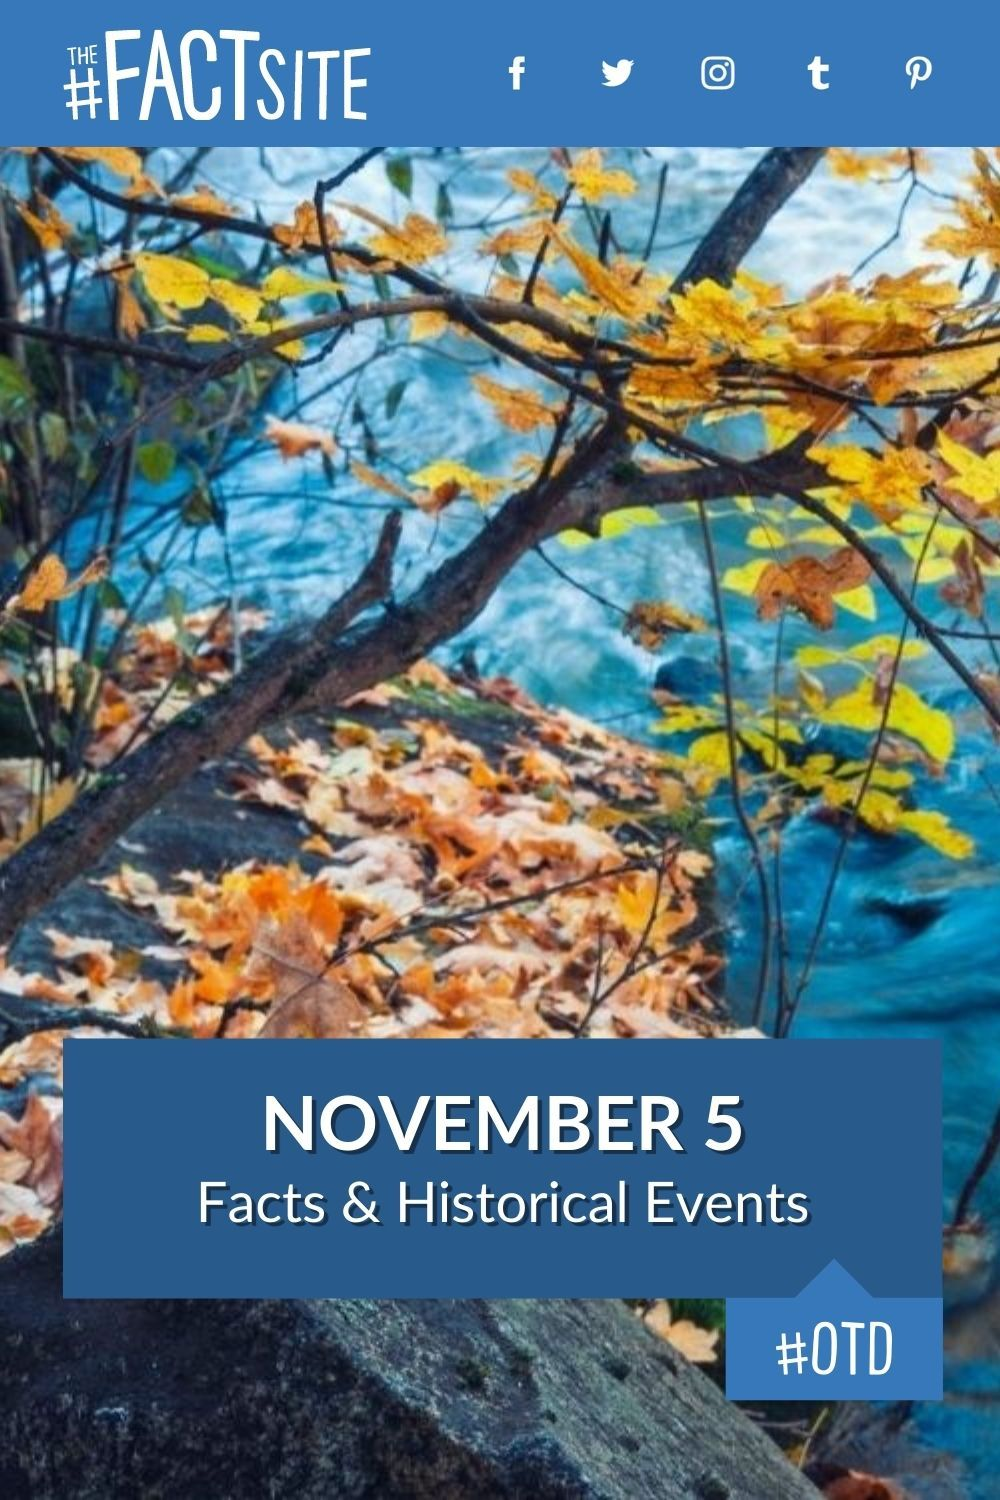 Facts & Historic Events That Happened on November 5